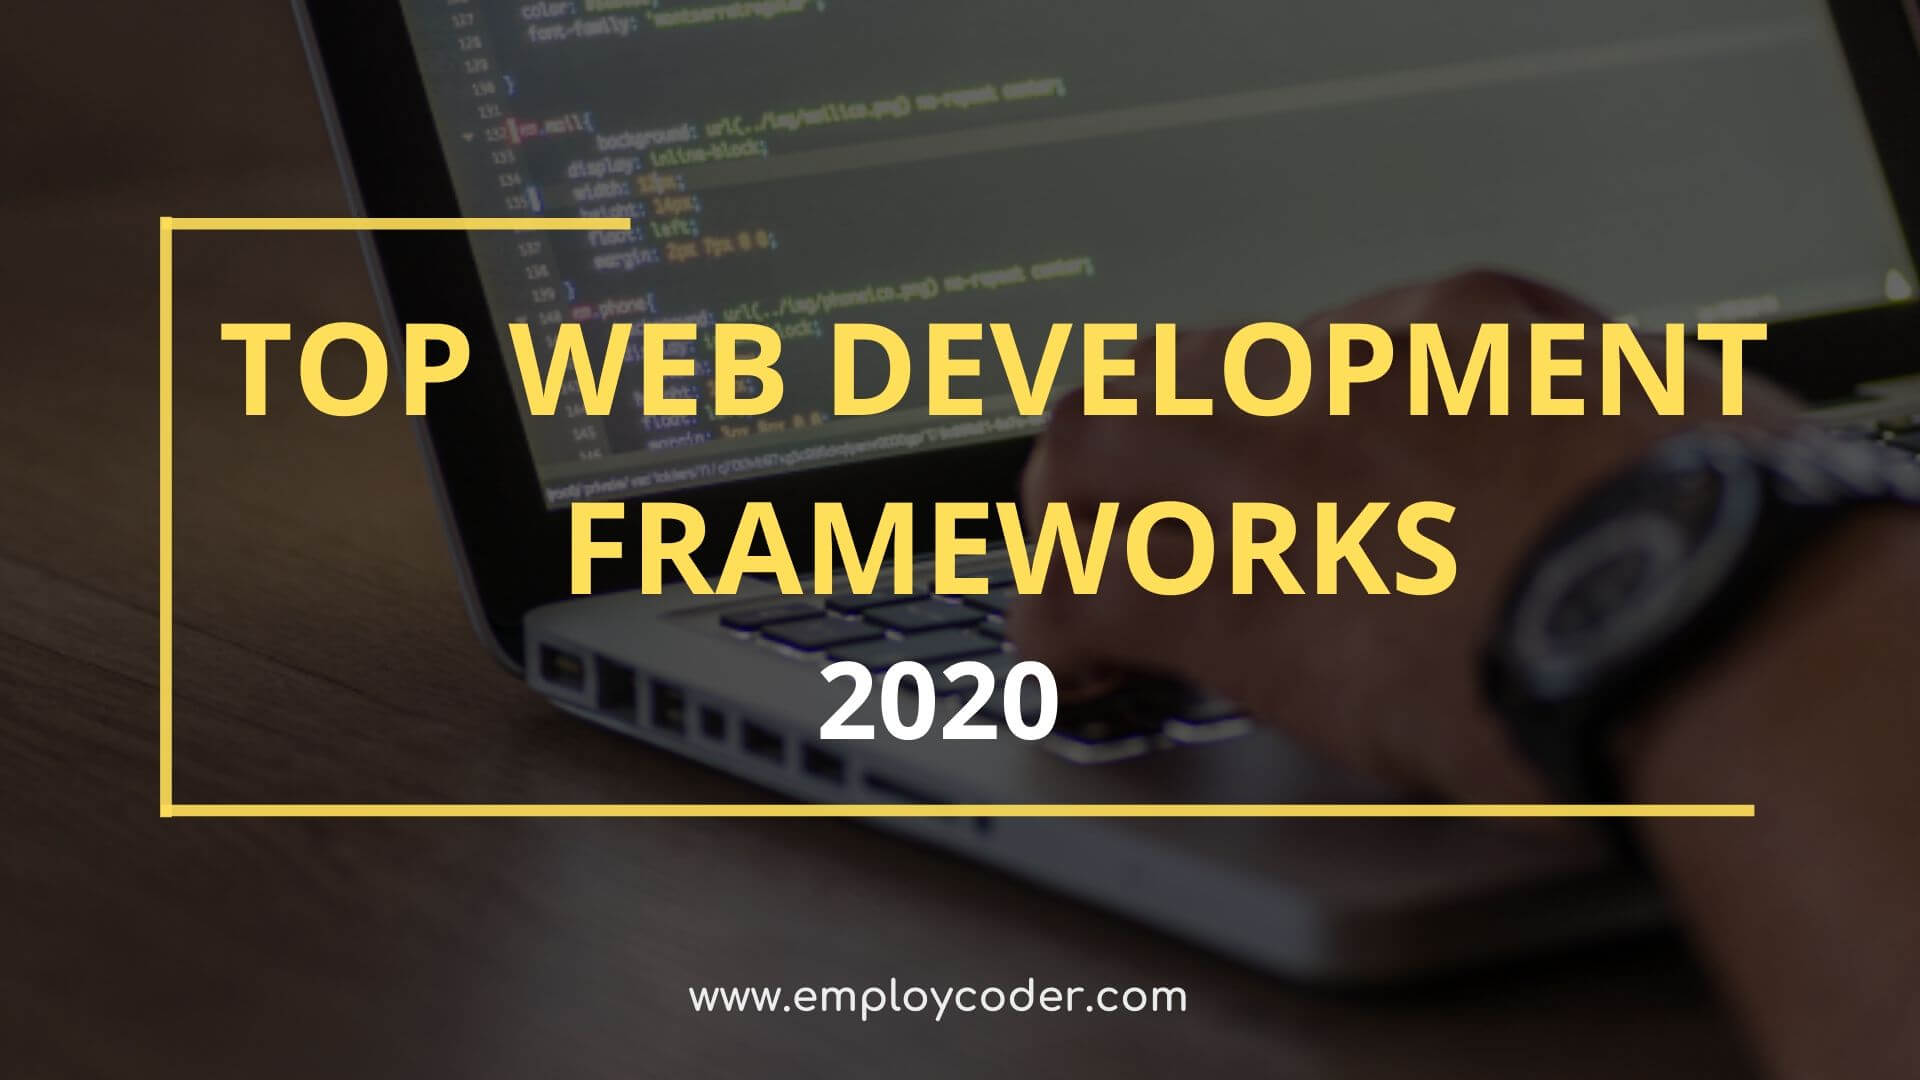 Top Web Development Frameworks 2020